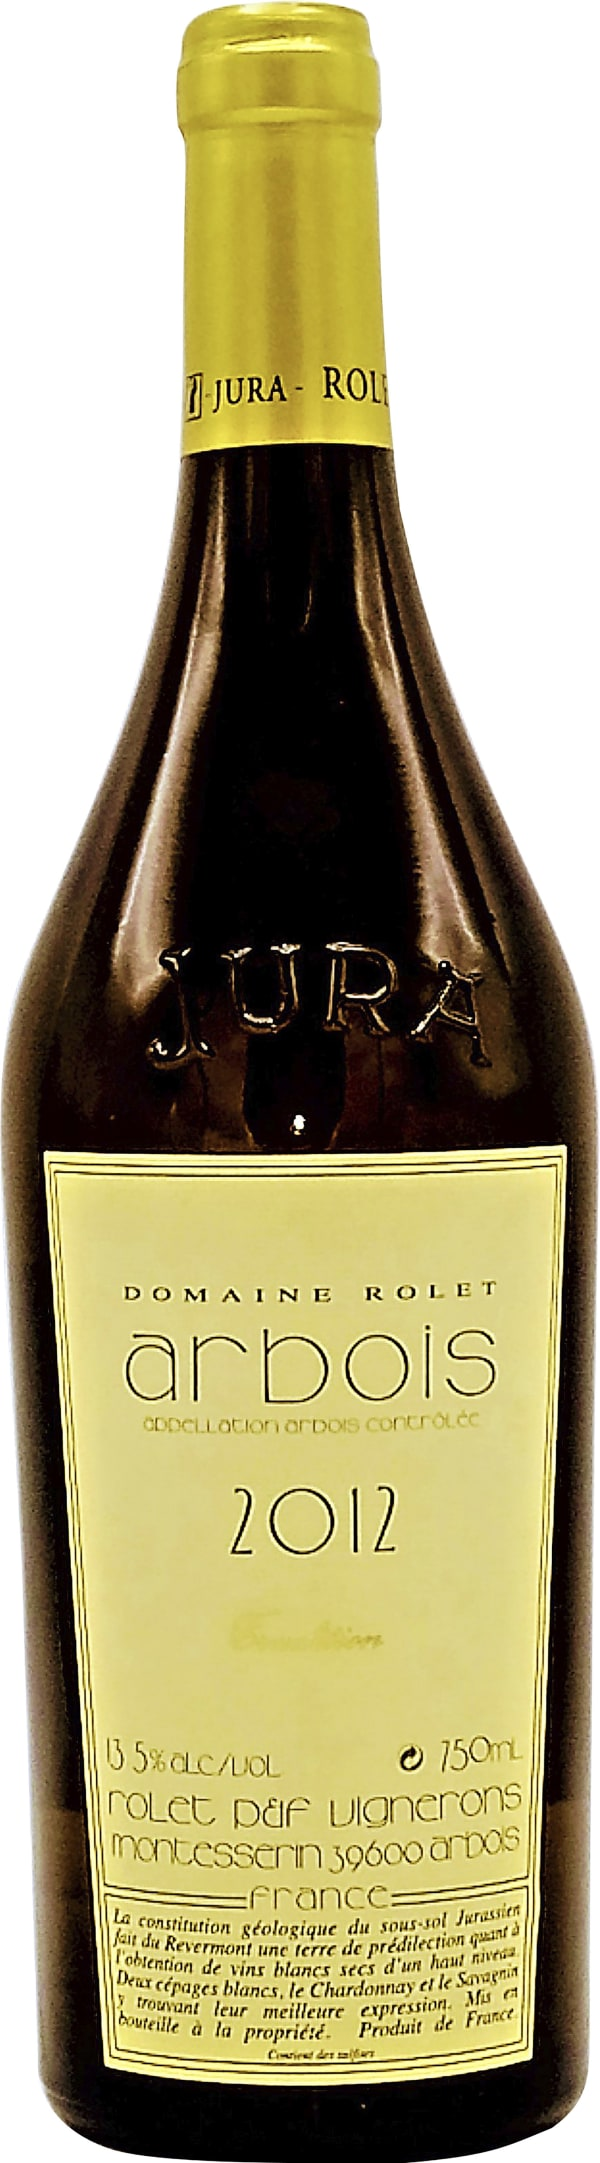 Domaine Rolet Arbois Blanc Tradition 2012